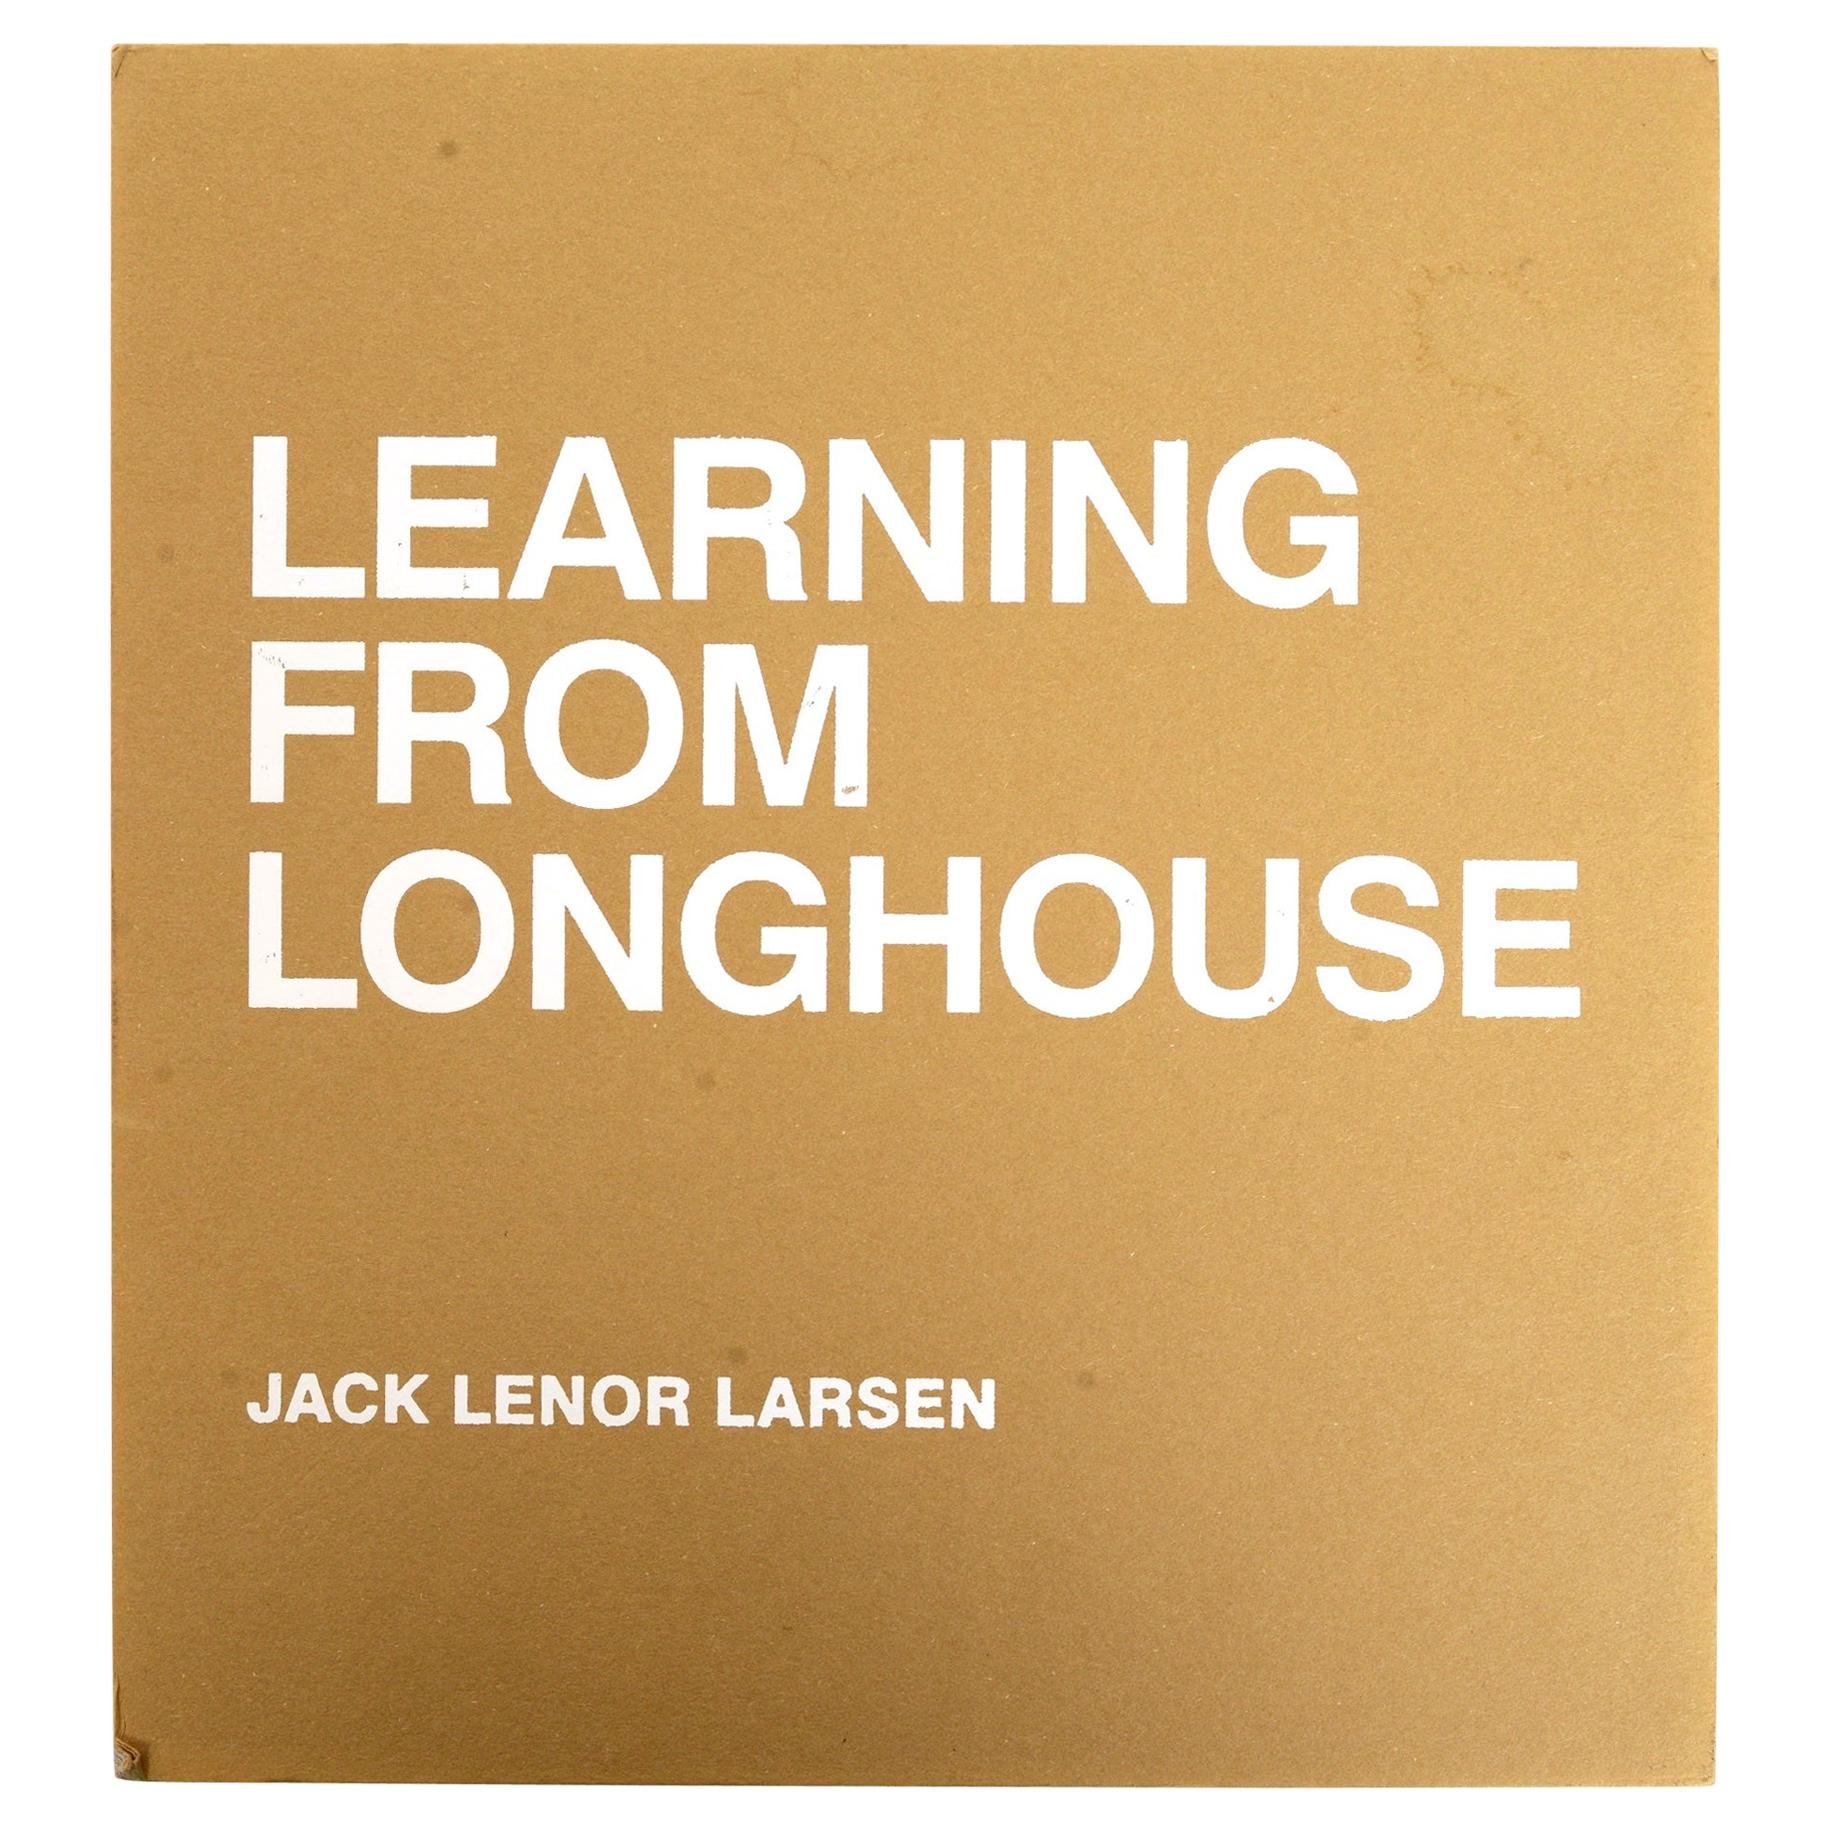 Learning from Longhouse by Jack Lenor Larsen, Signed, Stated First Edition